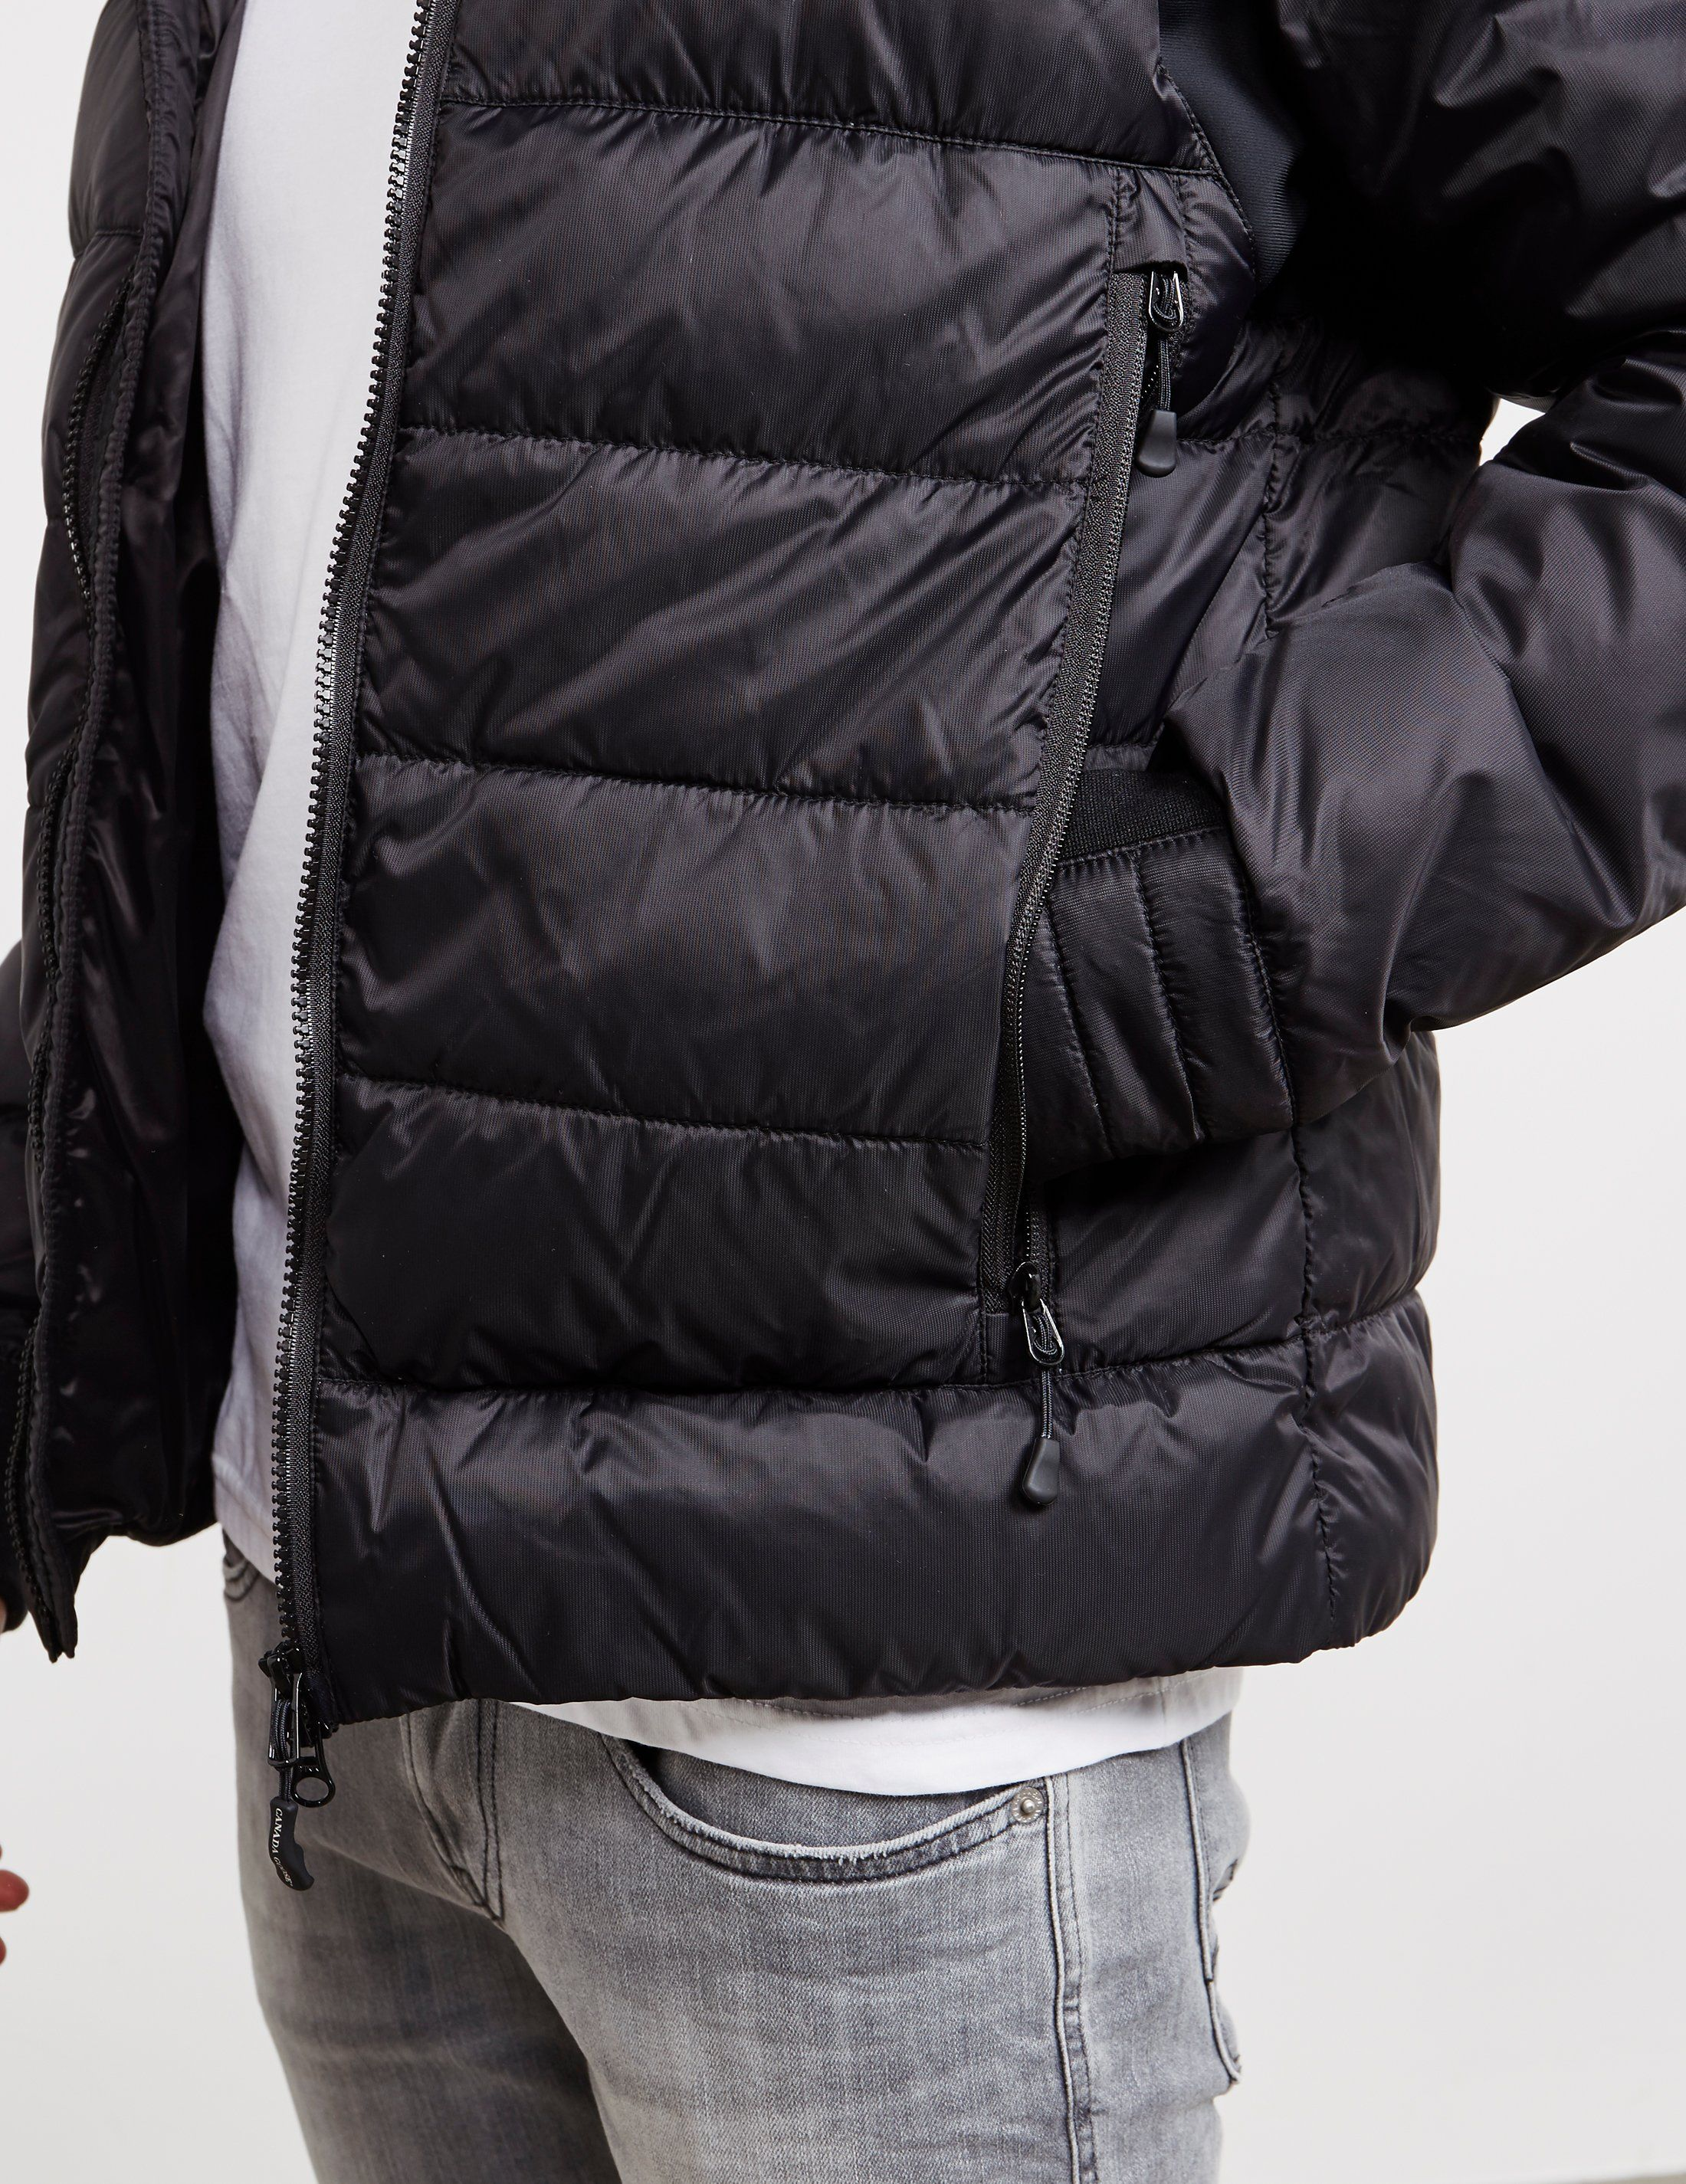 Canada Goose Hybridge Base Jacket - Online Exclusive